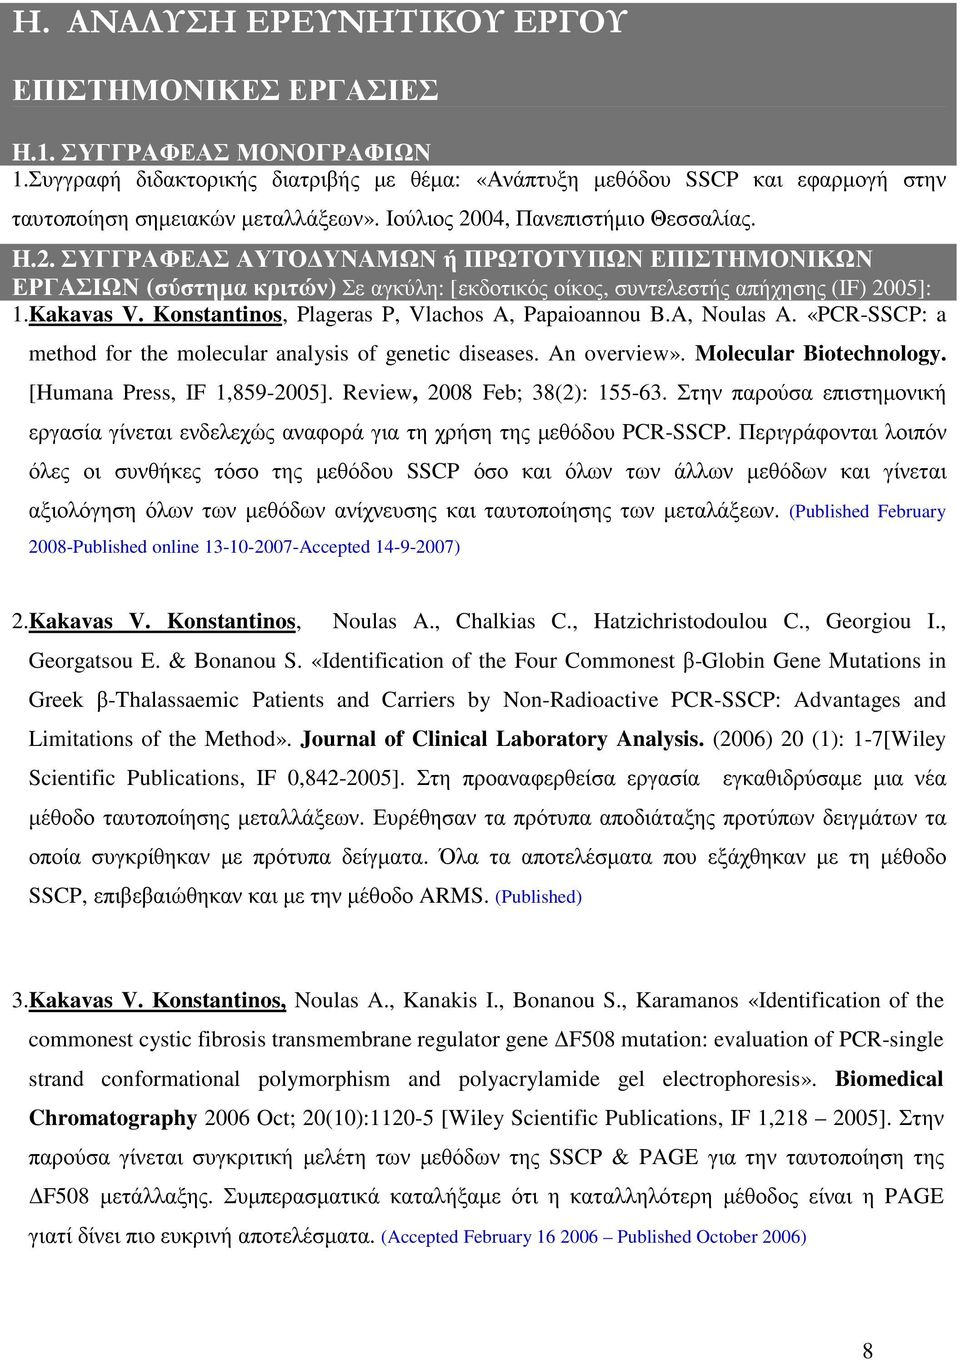 Konstantinos, Plageras P, Vlachos A, Papaioannou B.A, Noulas A. «PCR-SSCP: a method for the molecular analysis of genetic diseases. An overview». Molecular Biotechnology.